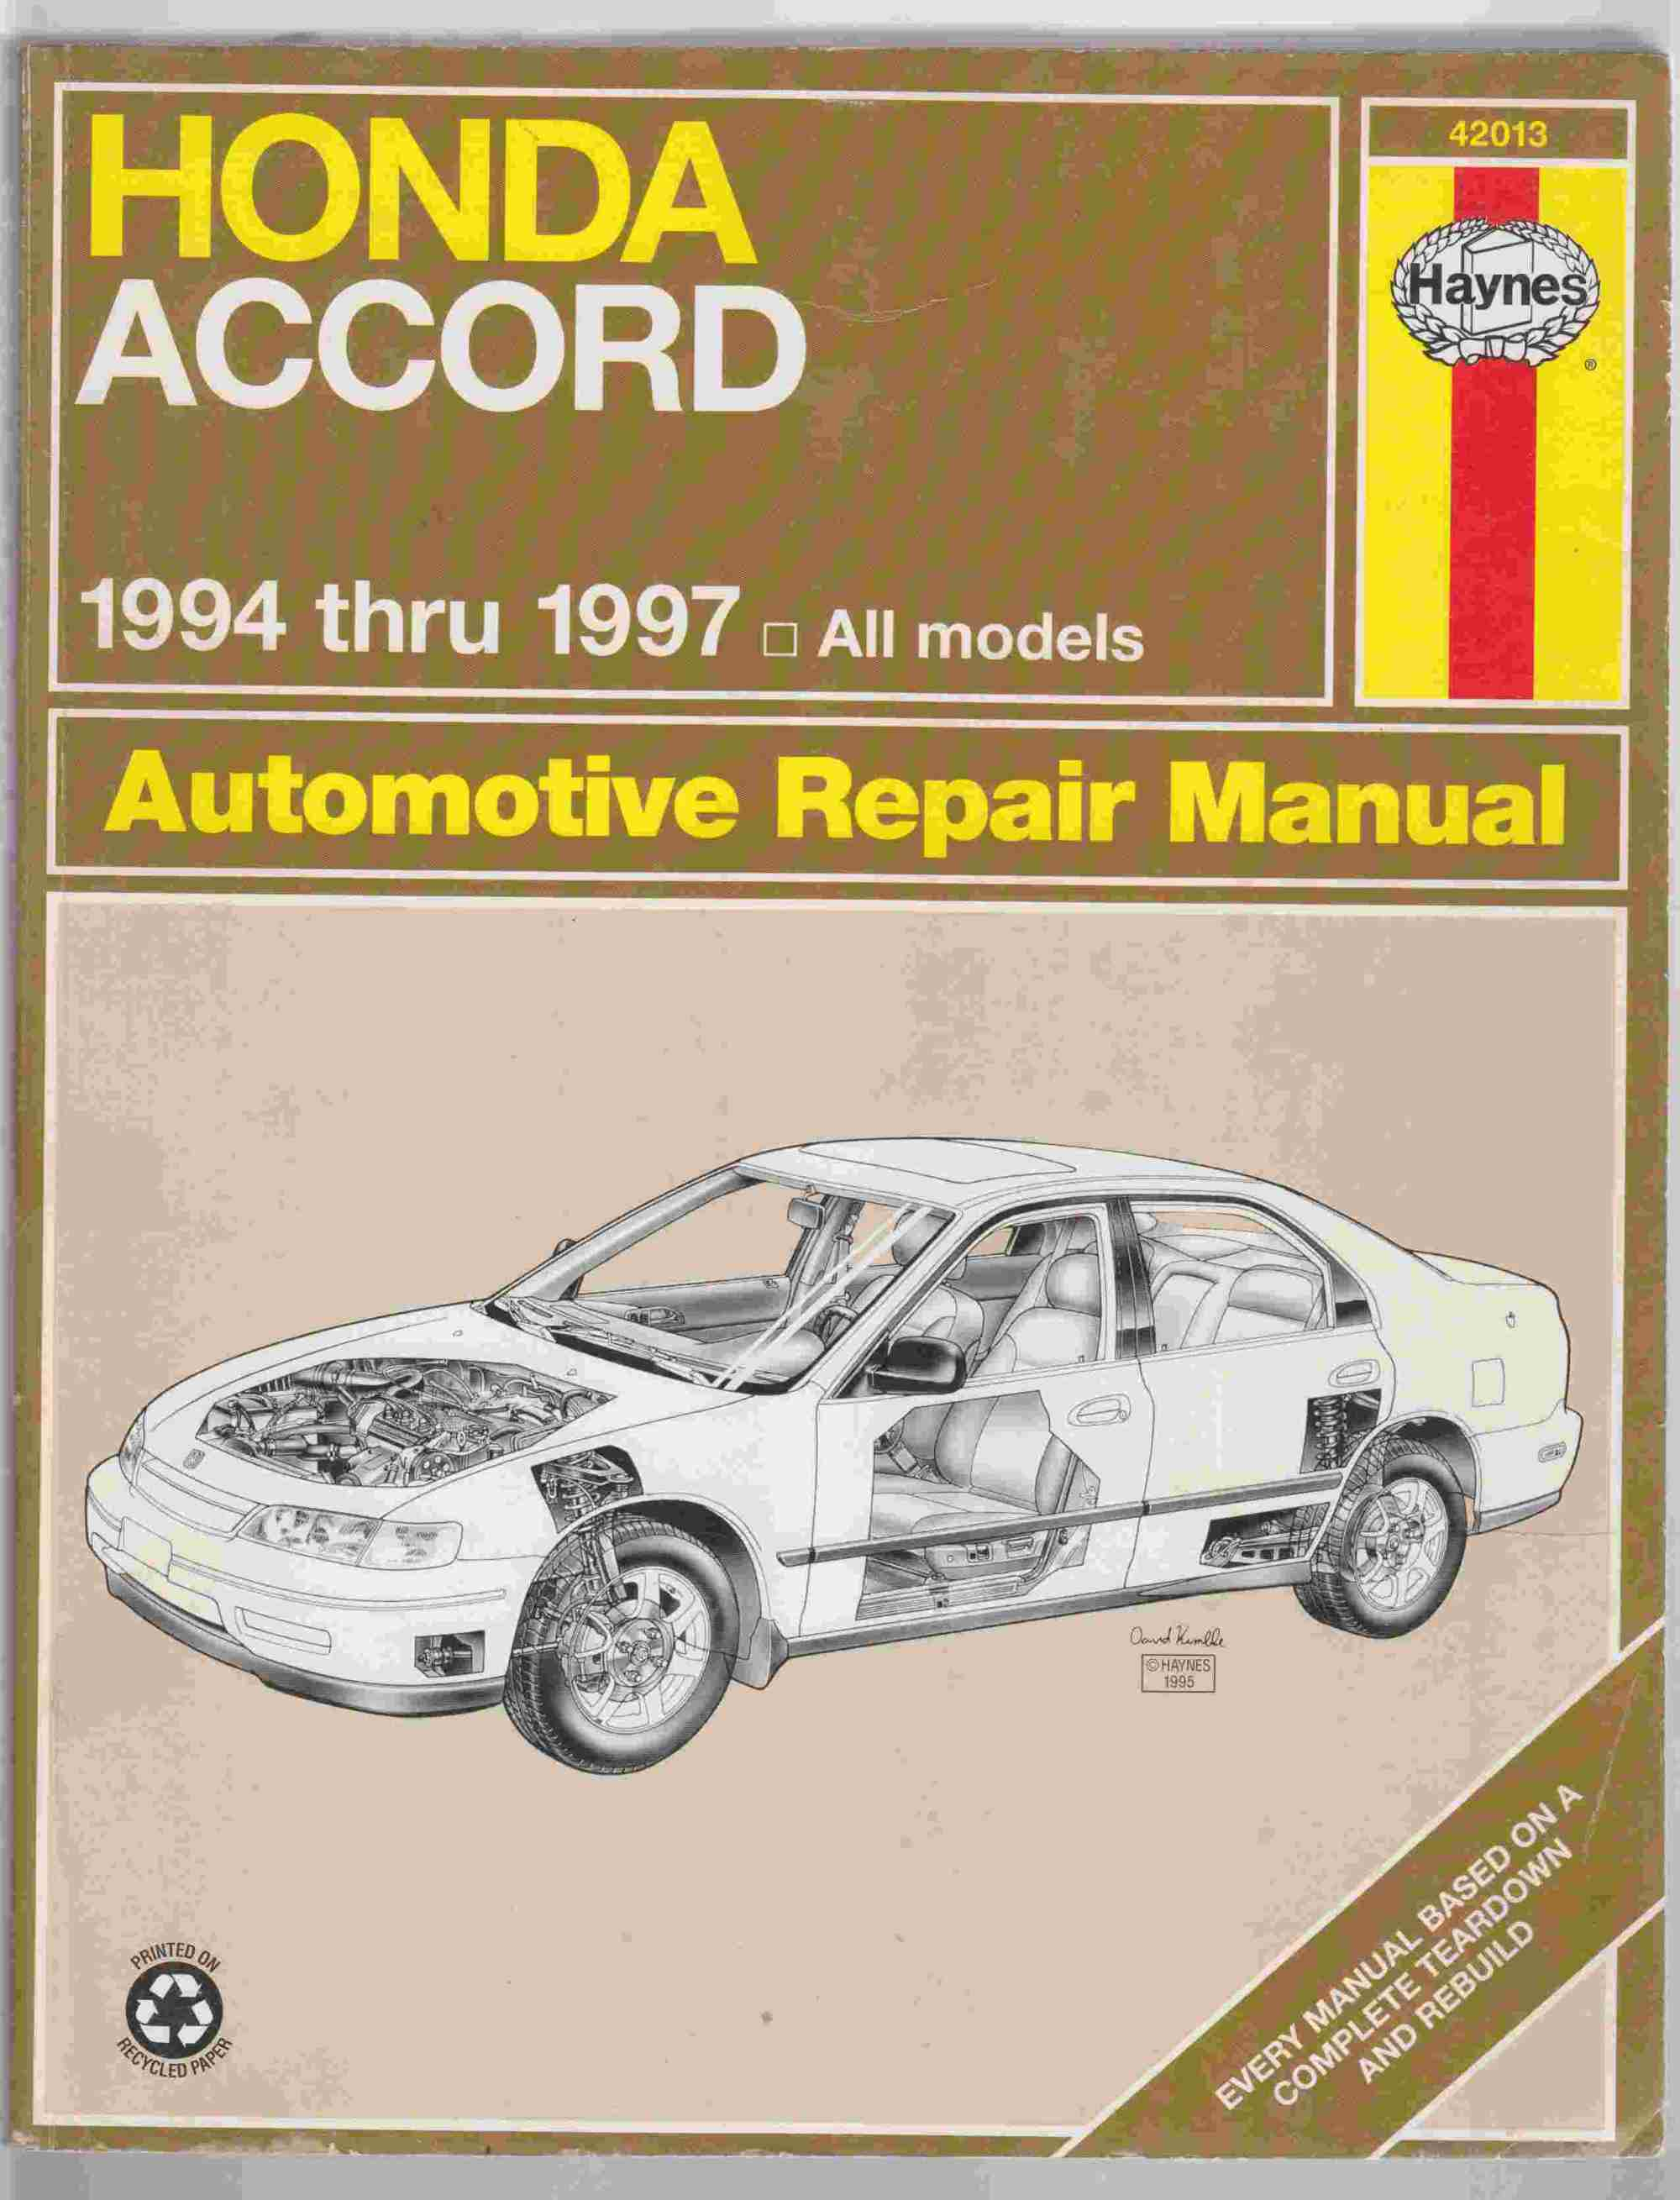 hight resolution of image for honda accord 1994 thru 1997 automotive repair manual